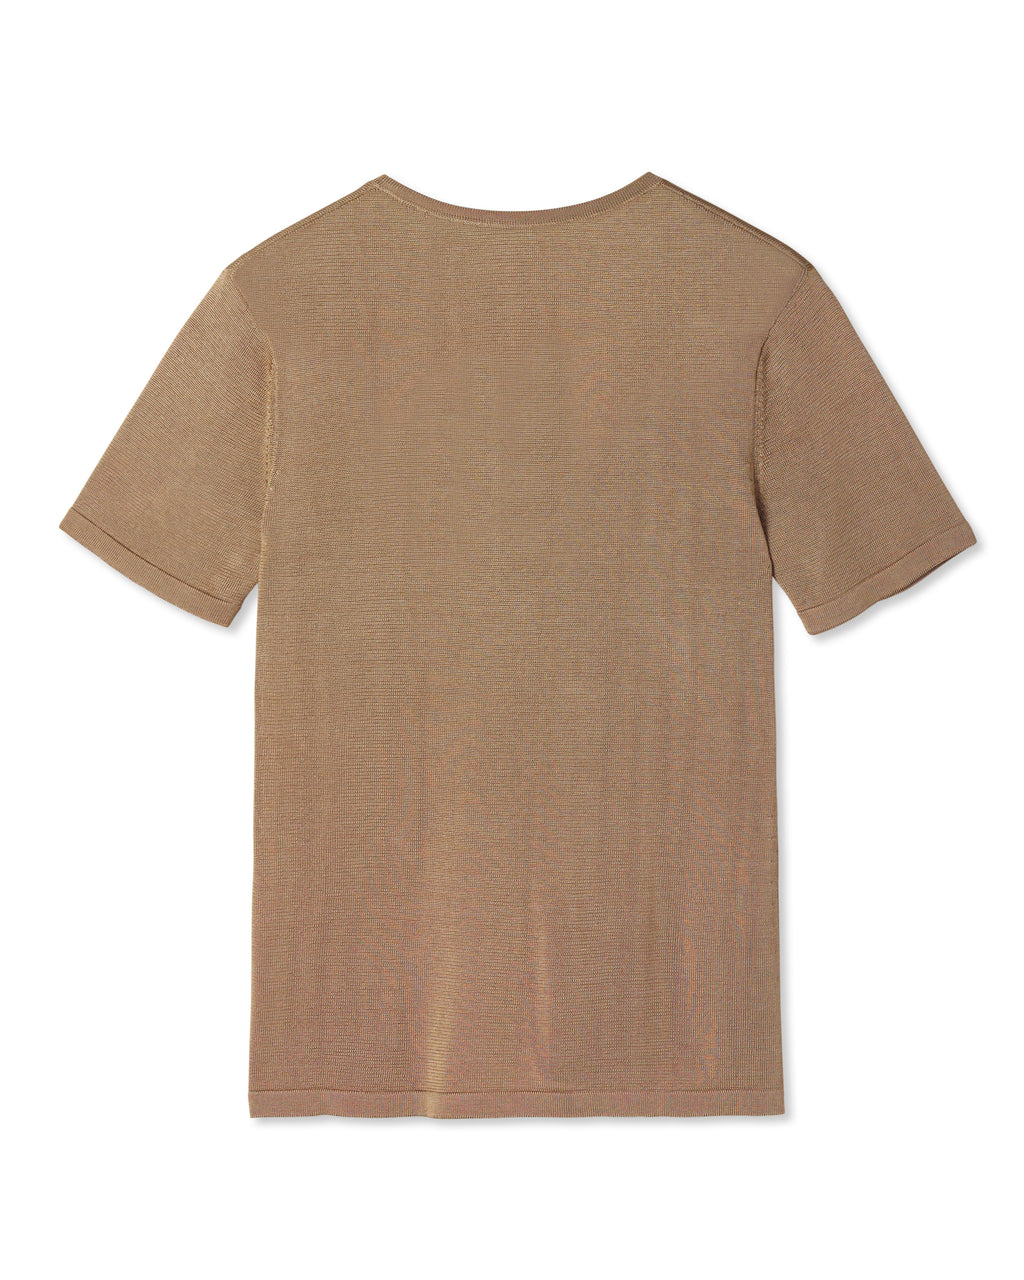 VALEN V-NECK KNIT SHIRT GOLDEN CAMEL